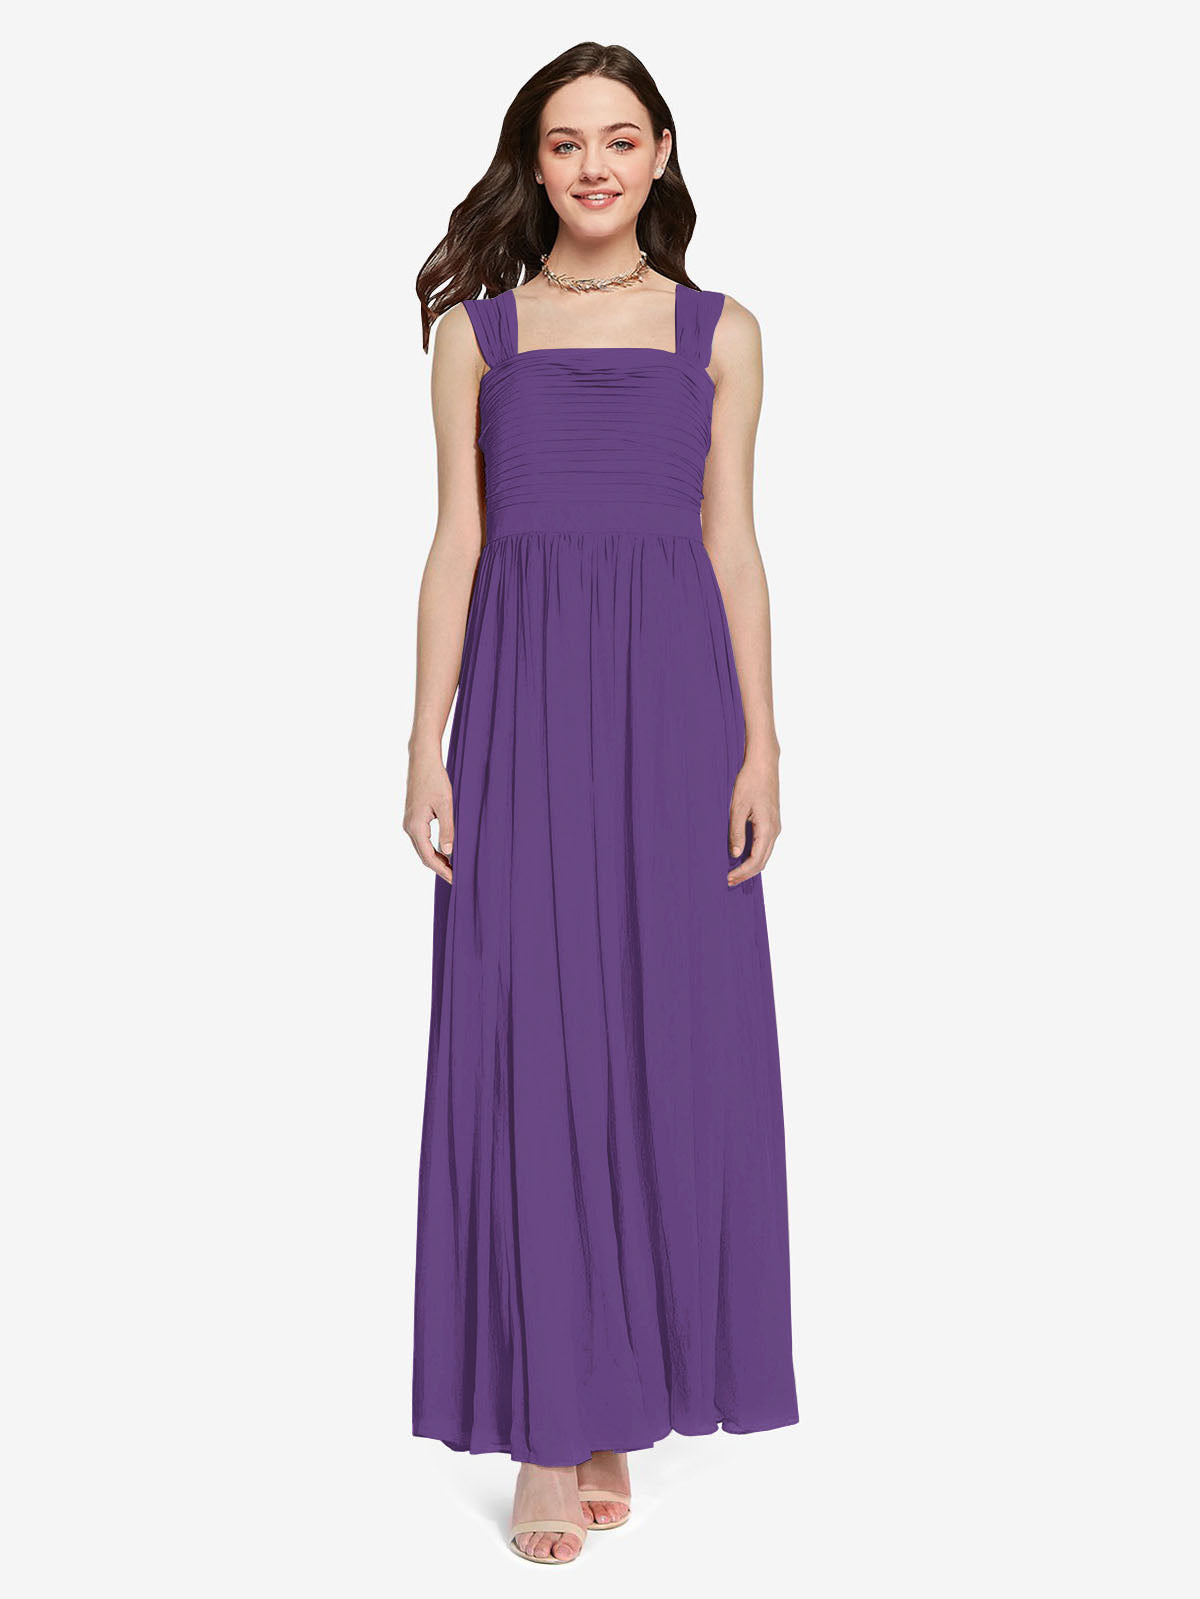 Long A-Line Square Sleeveless Plum Purple Chiffon Bridesmaid Dress Aldridge